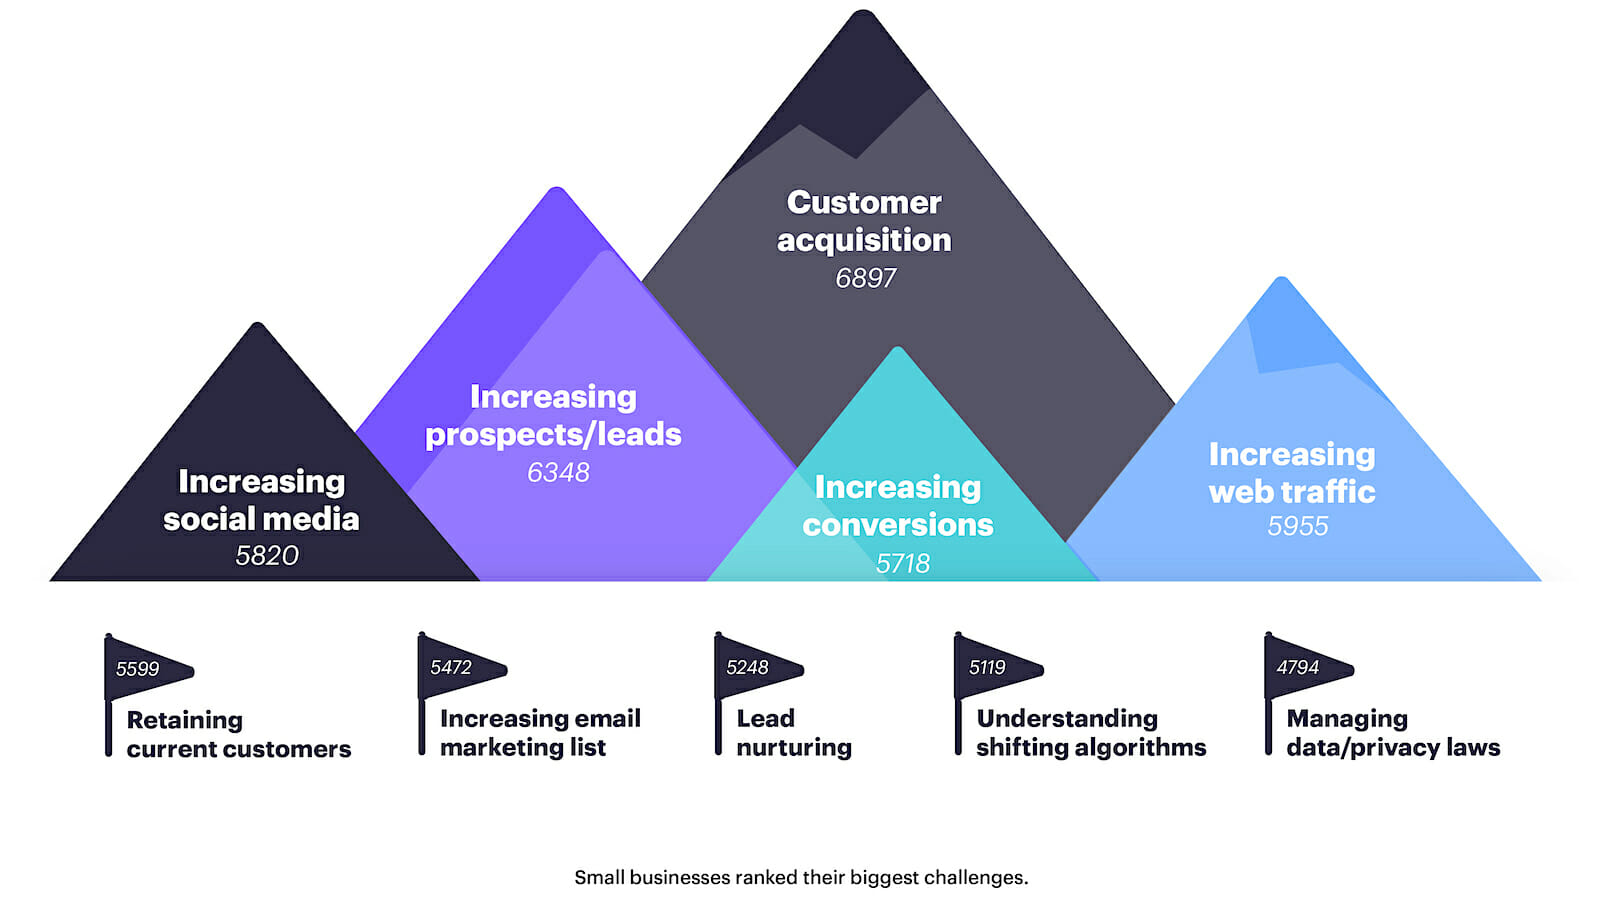 smb-guide-ranked-biggest-marketing-challenges